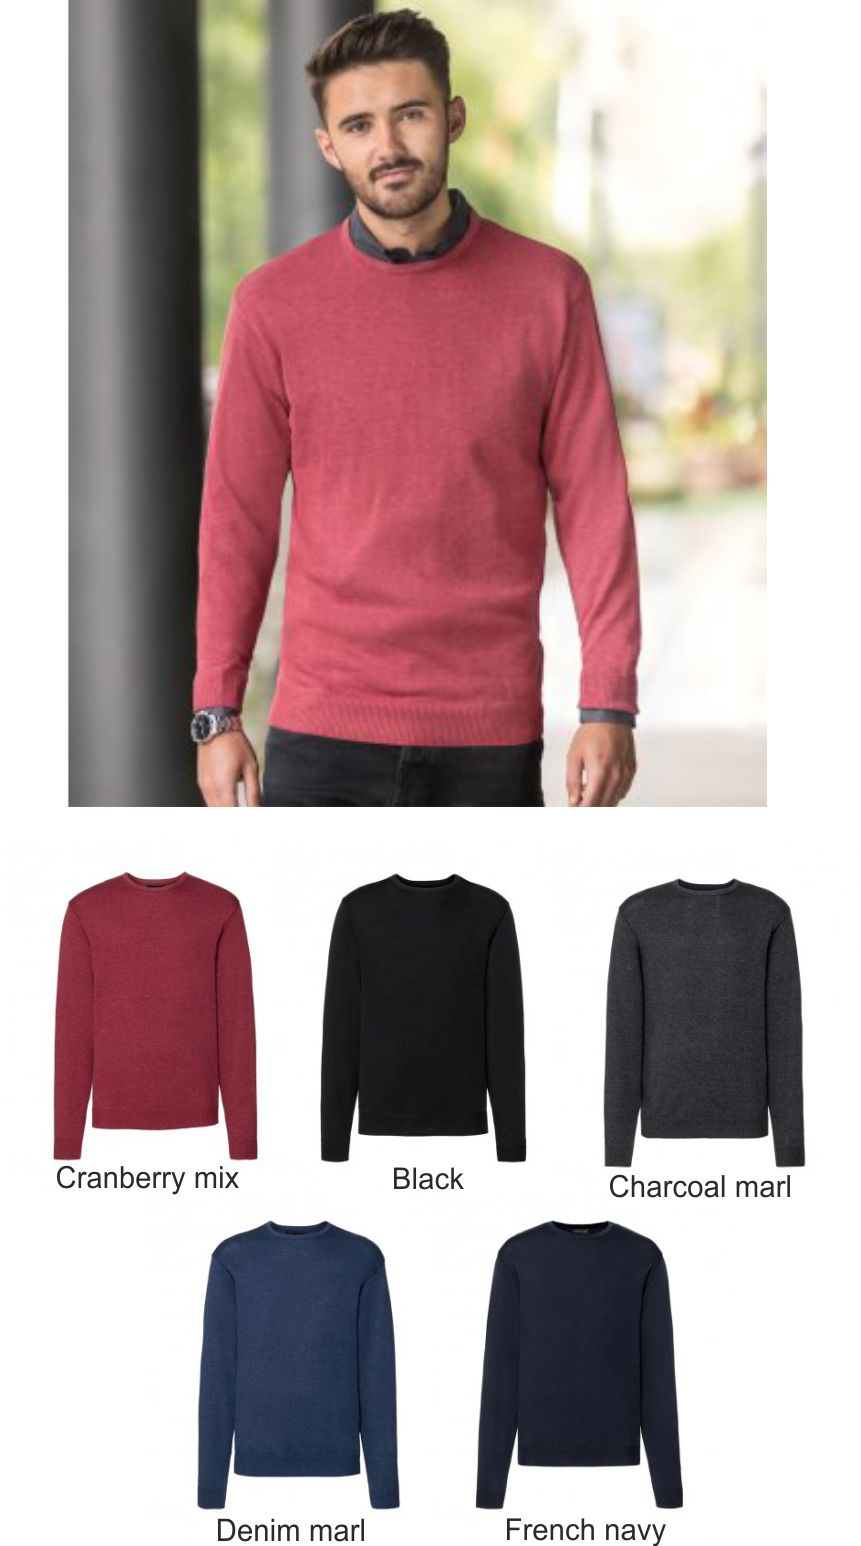 717M Russell collection Cotton acrylic Crew Neck Sweater